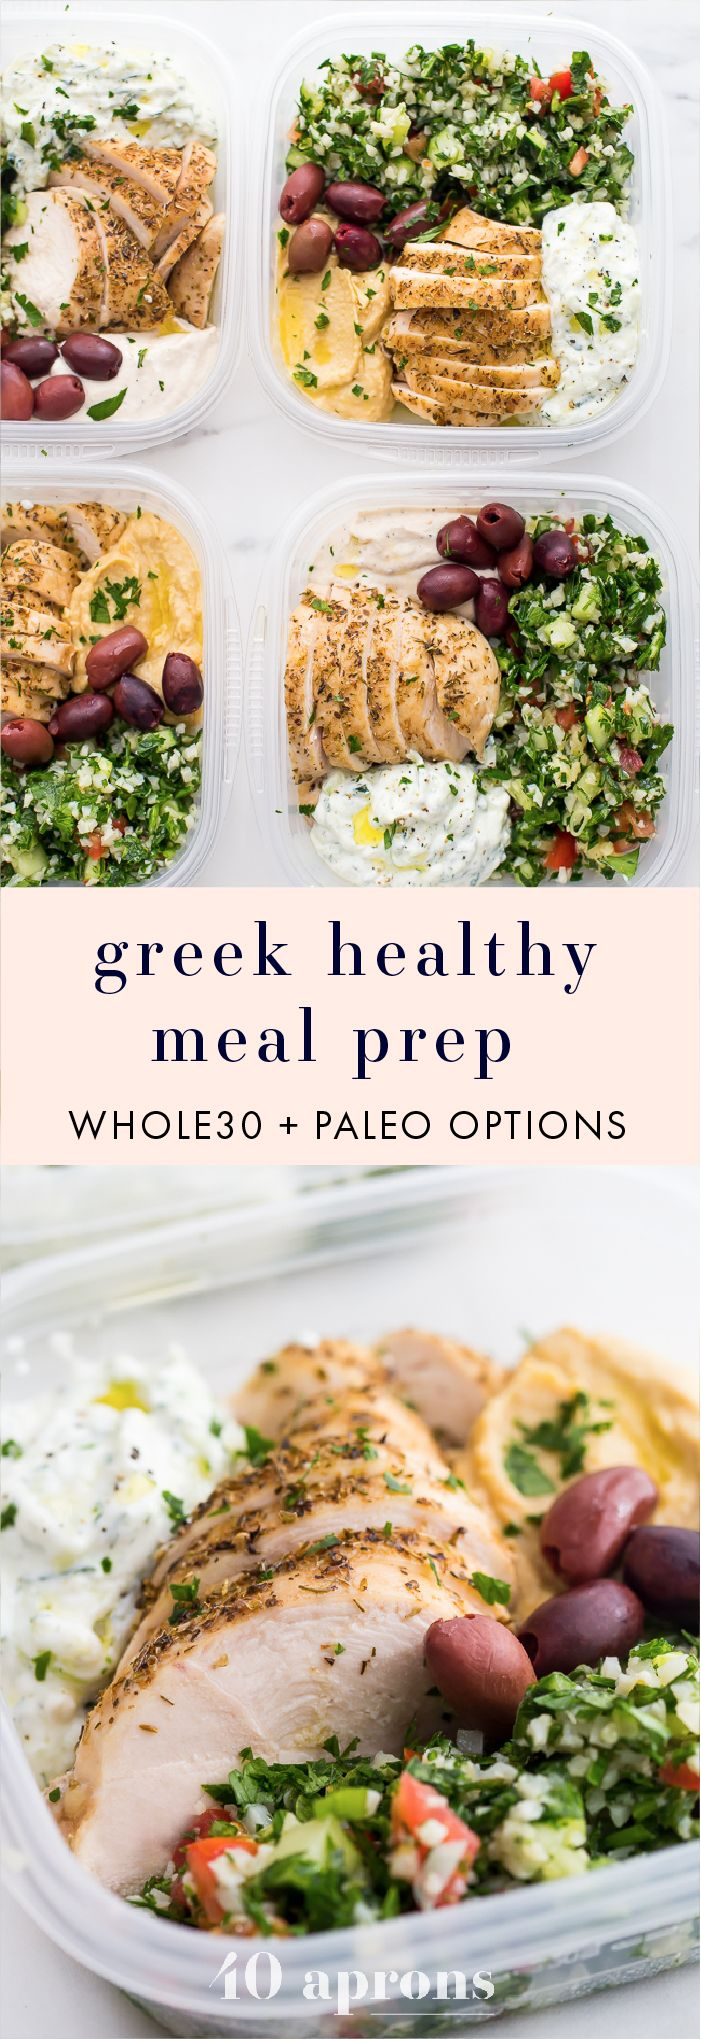 This Greek healthy meal prep recipe is epic: cauliflower rice tabbouleh, tender seasoned chicken breasts, hummus or baba ganoush, kalamata olives, and a rich, garlicky tzatziki. This healthy meal prep recipe will have you looking forward to lunch all morn http://healthyquickly.com